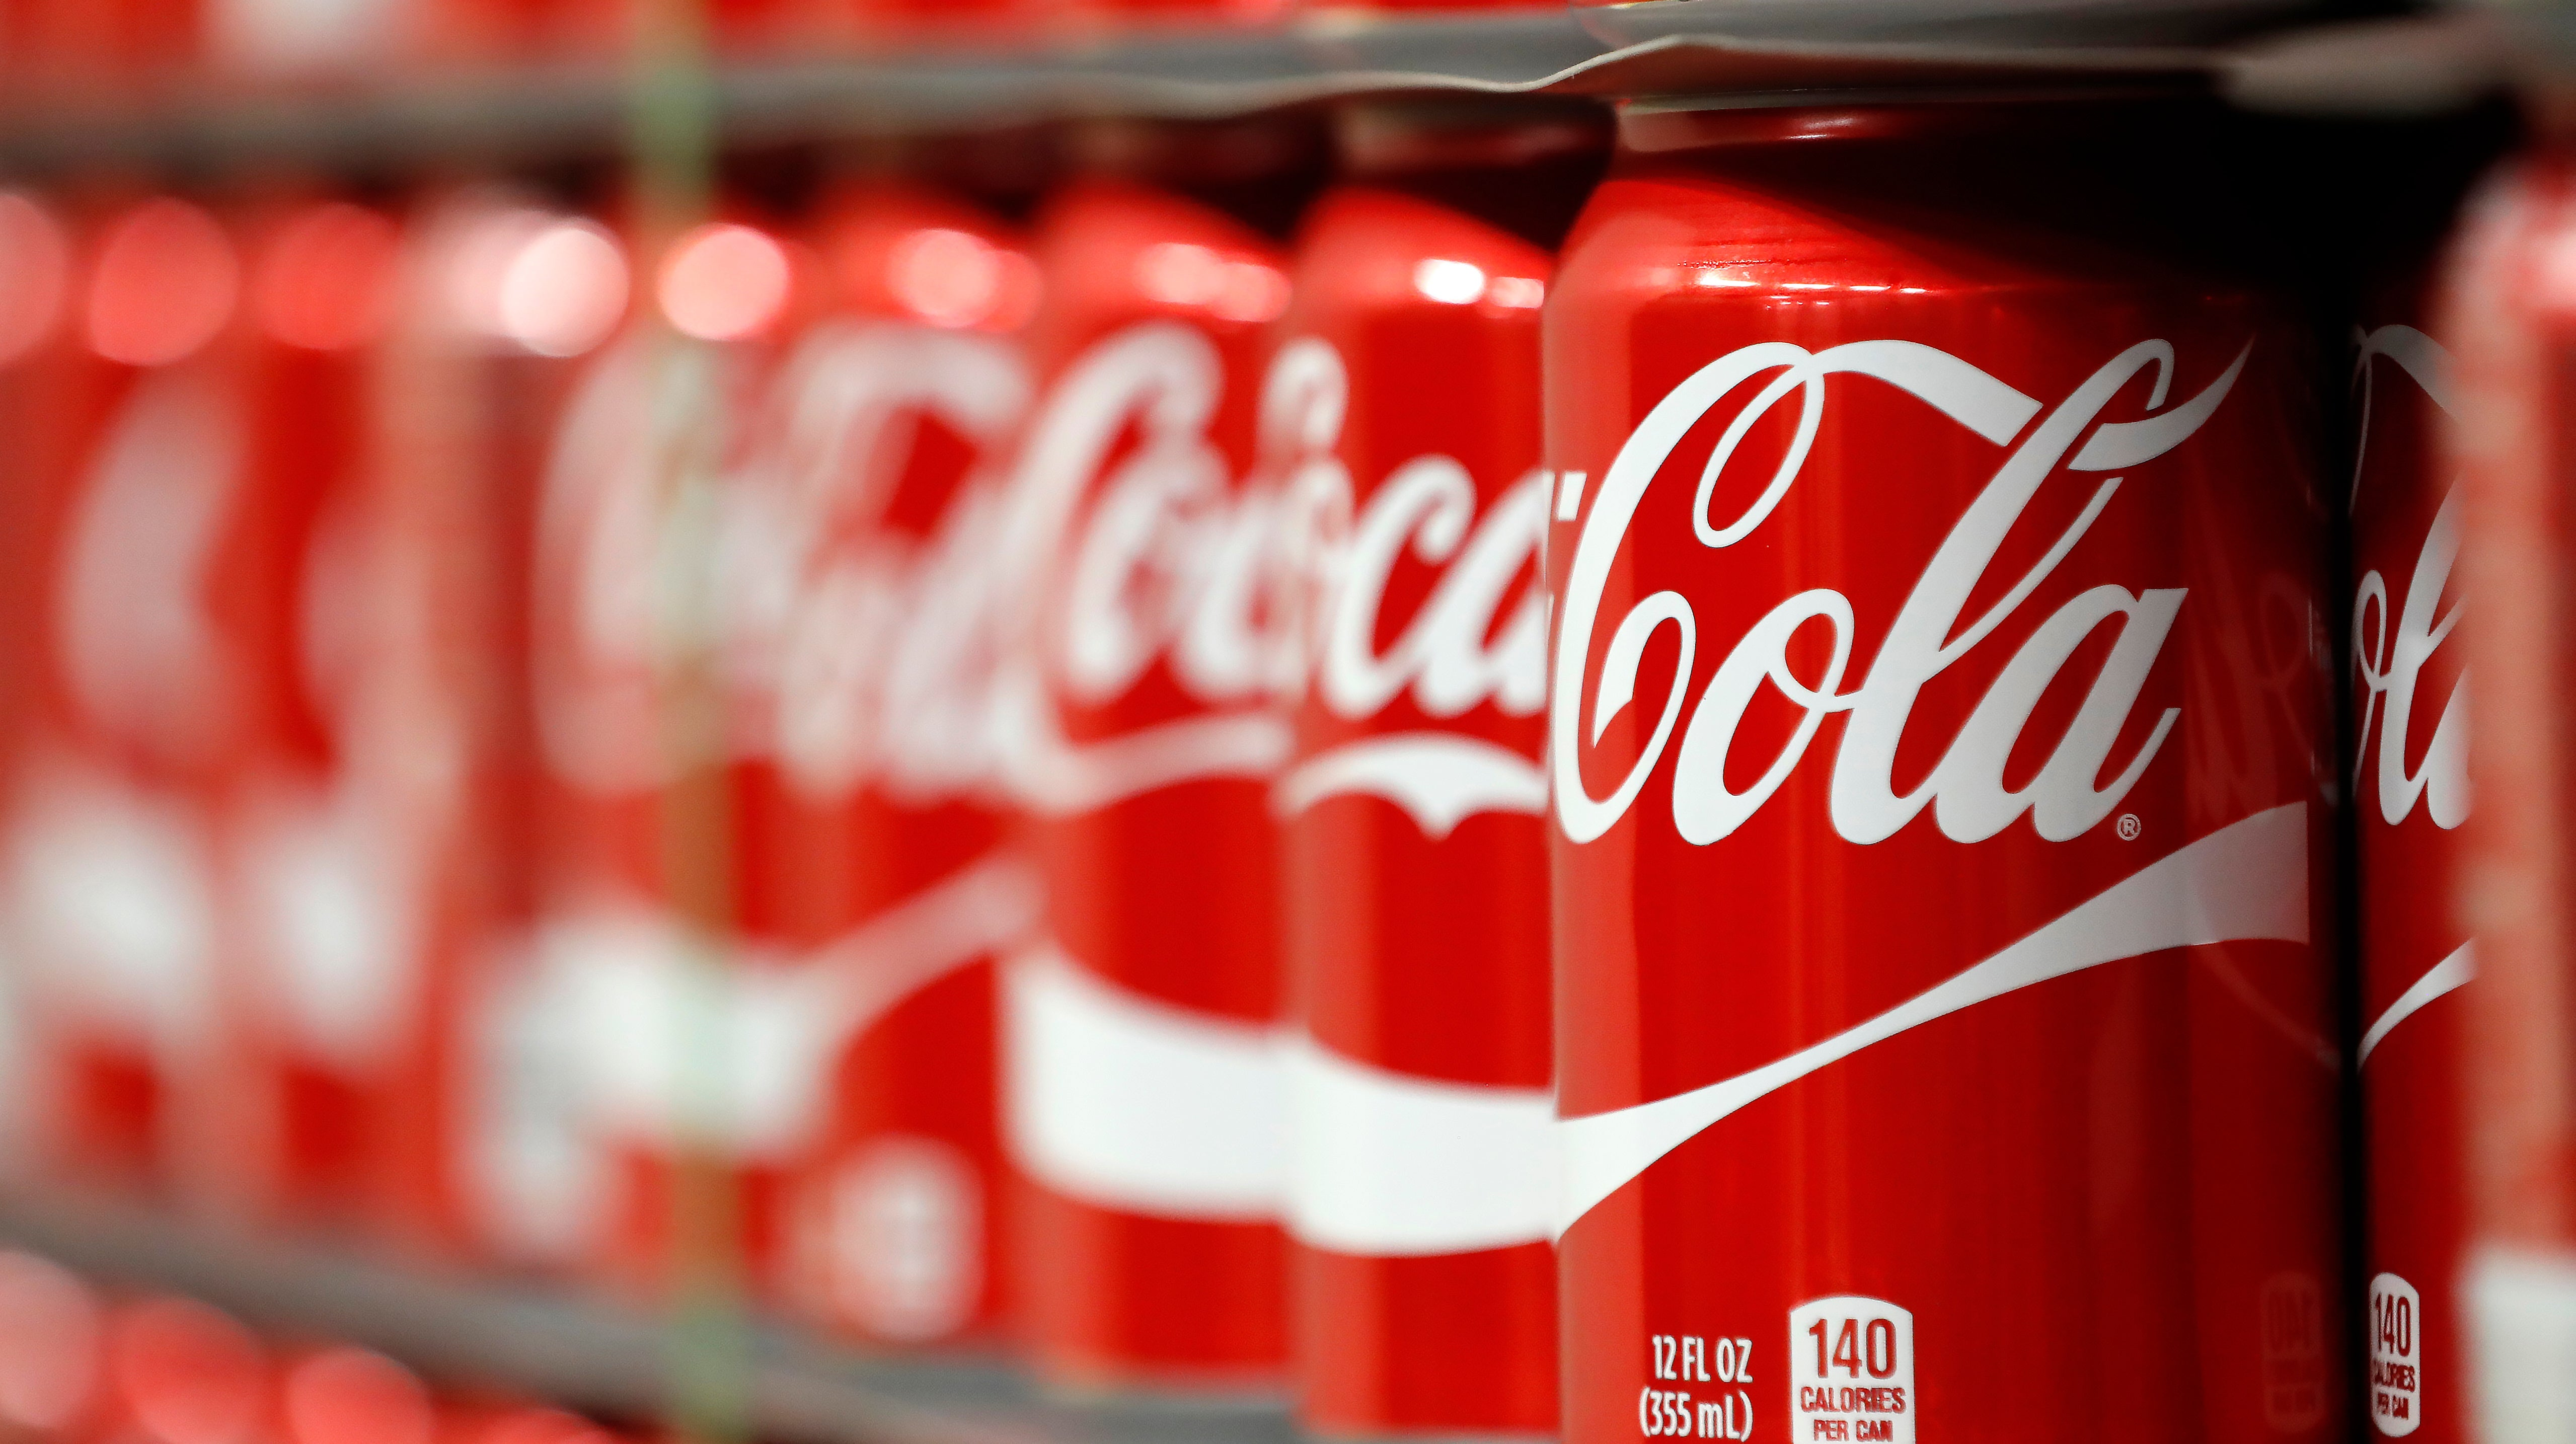 Report: Coca-Cola Is Quietly Influencing China's Obesity Policy — And Shifting Blame From Itself